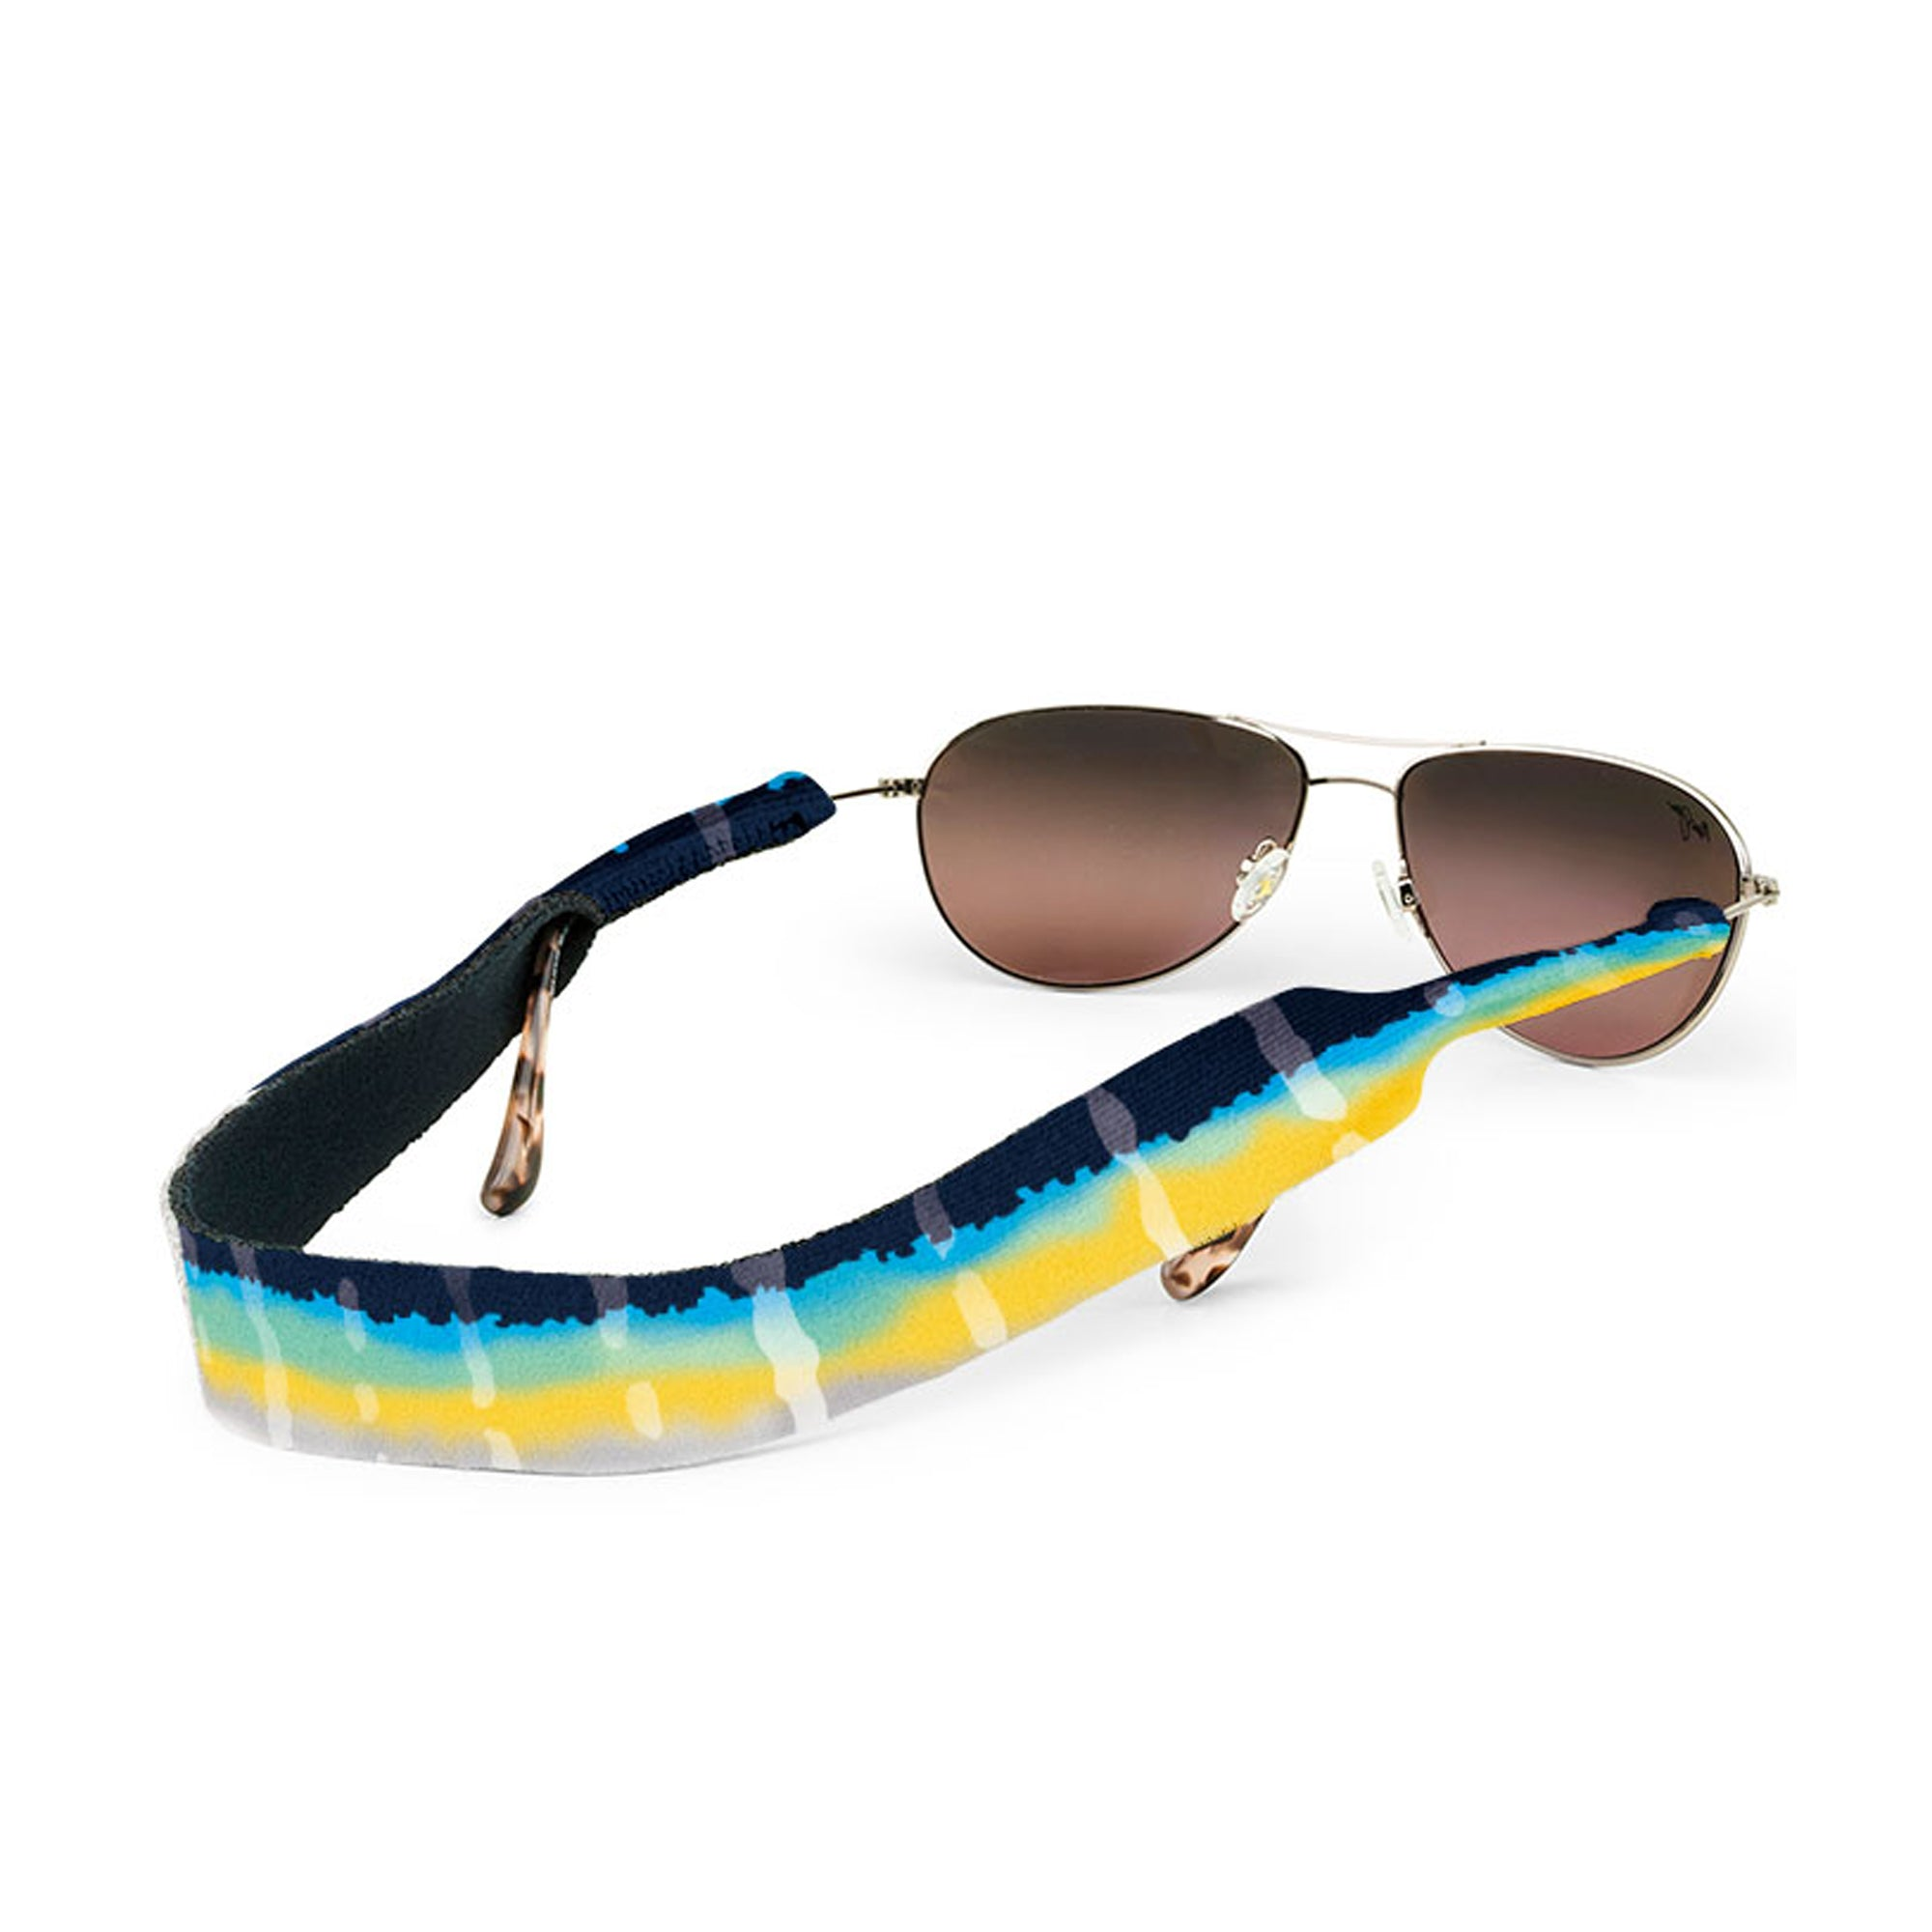 Croakies Original Eyewear Retainers - Tuna Fish Skin